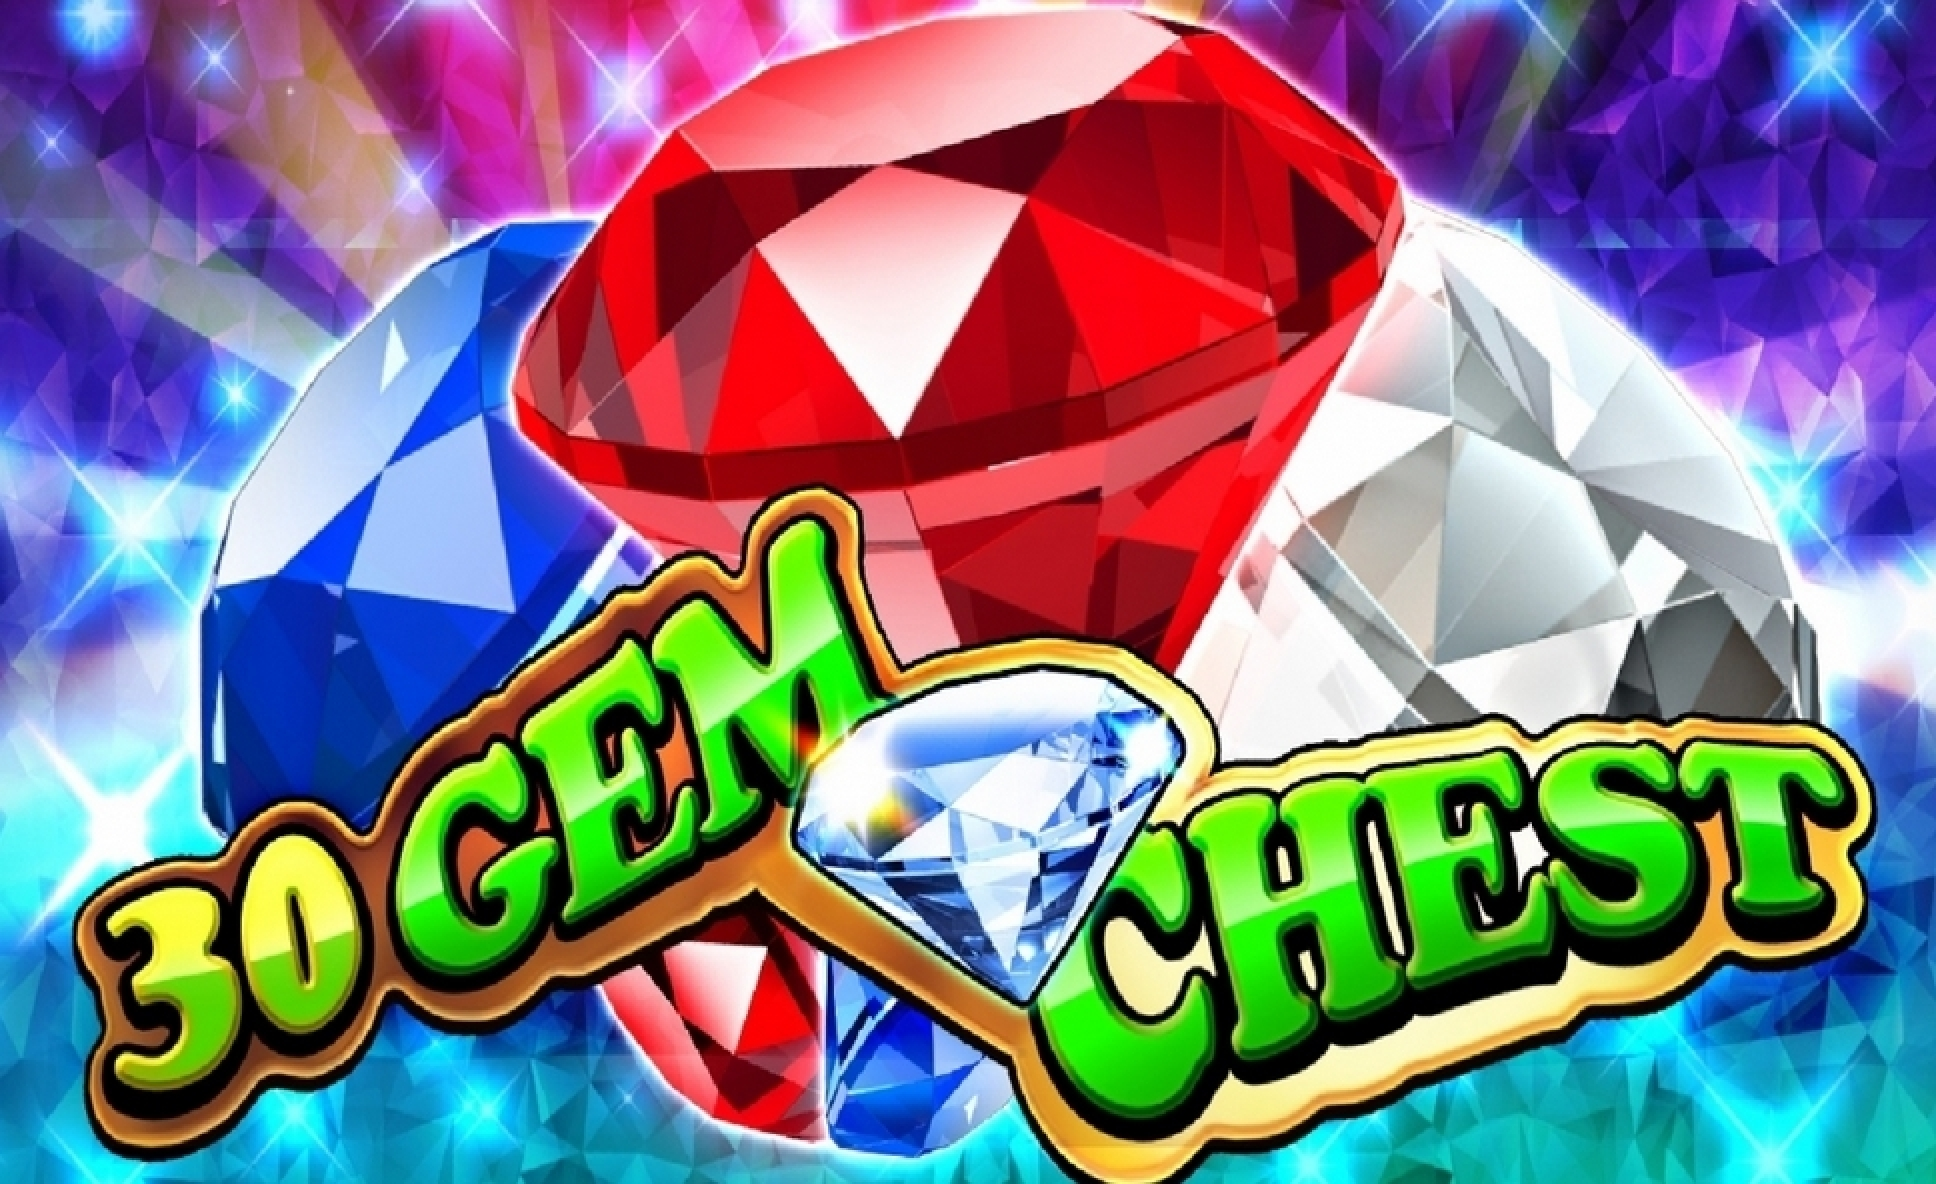 The 30 Gem Chest Online Slot Demo Game by FUGA Gaming